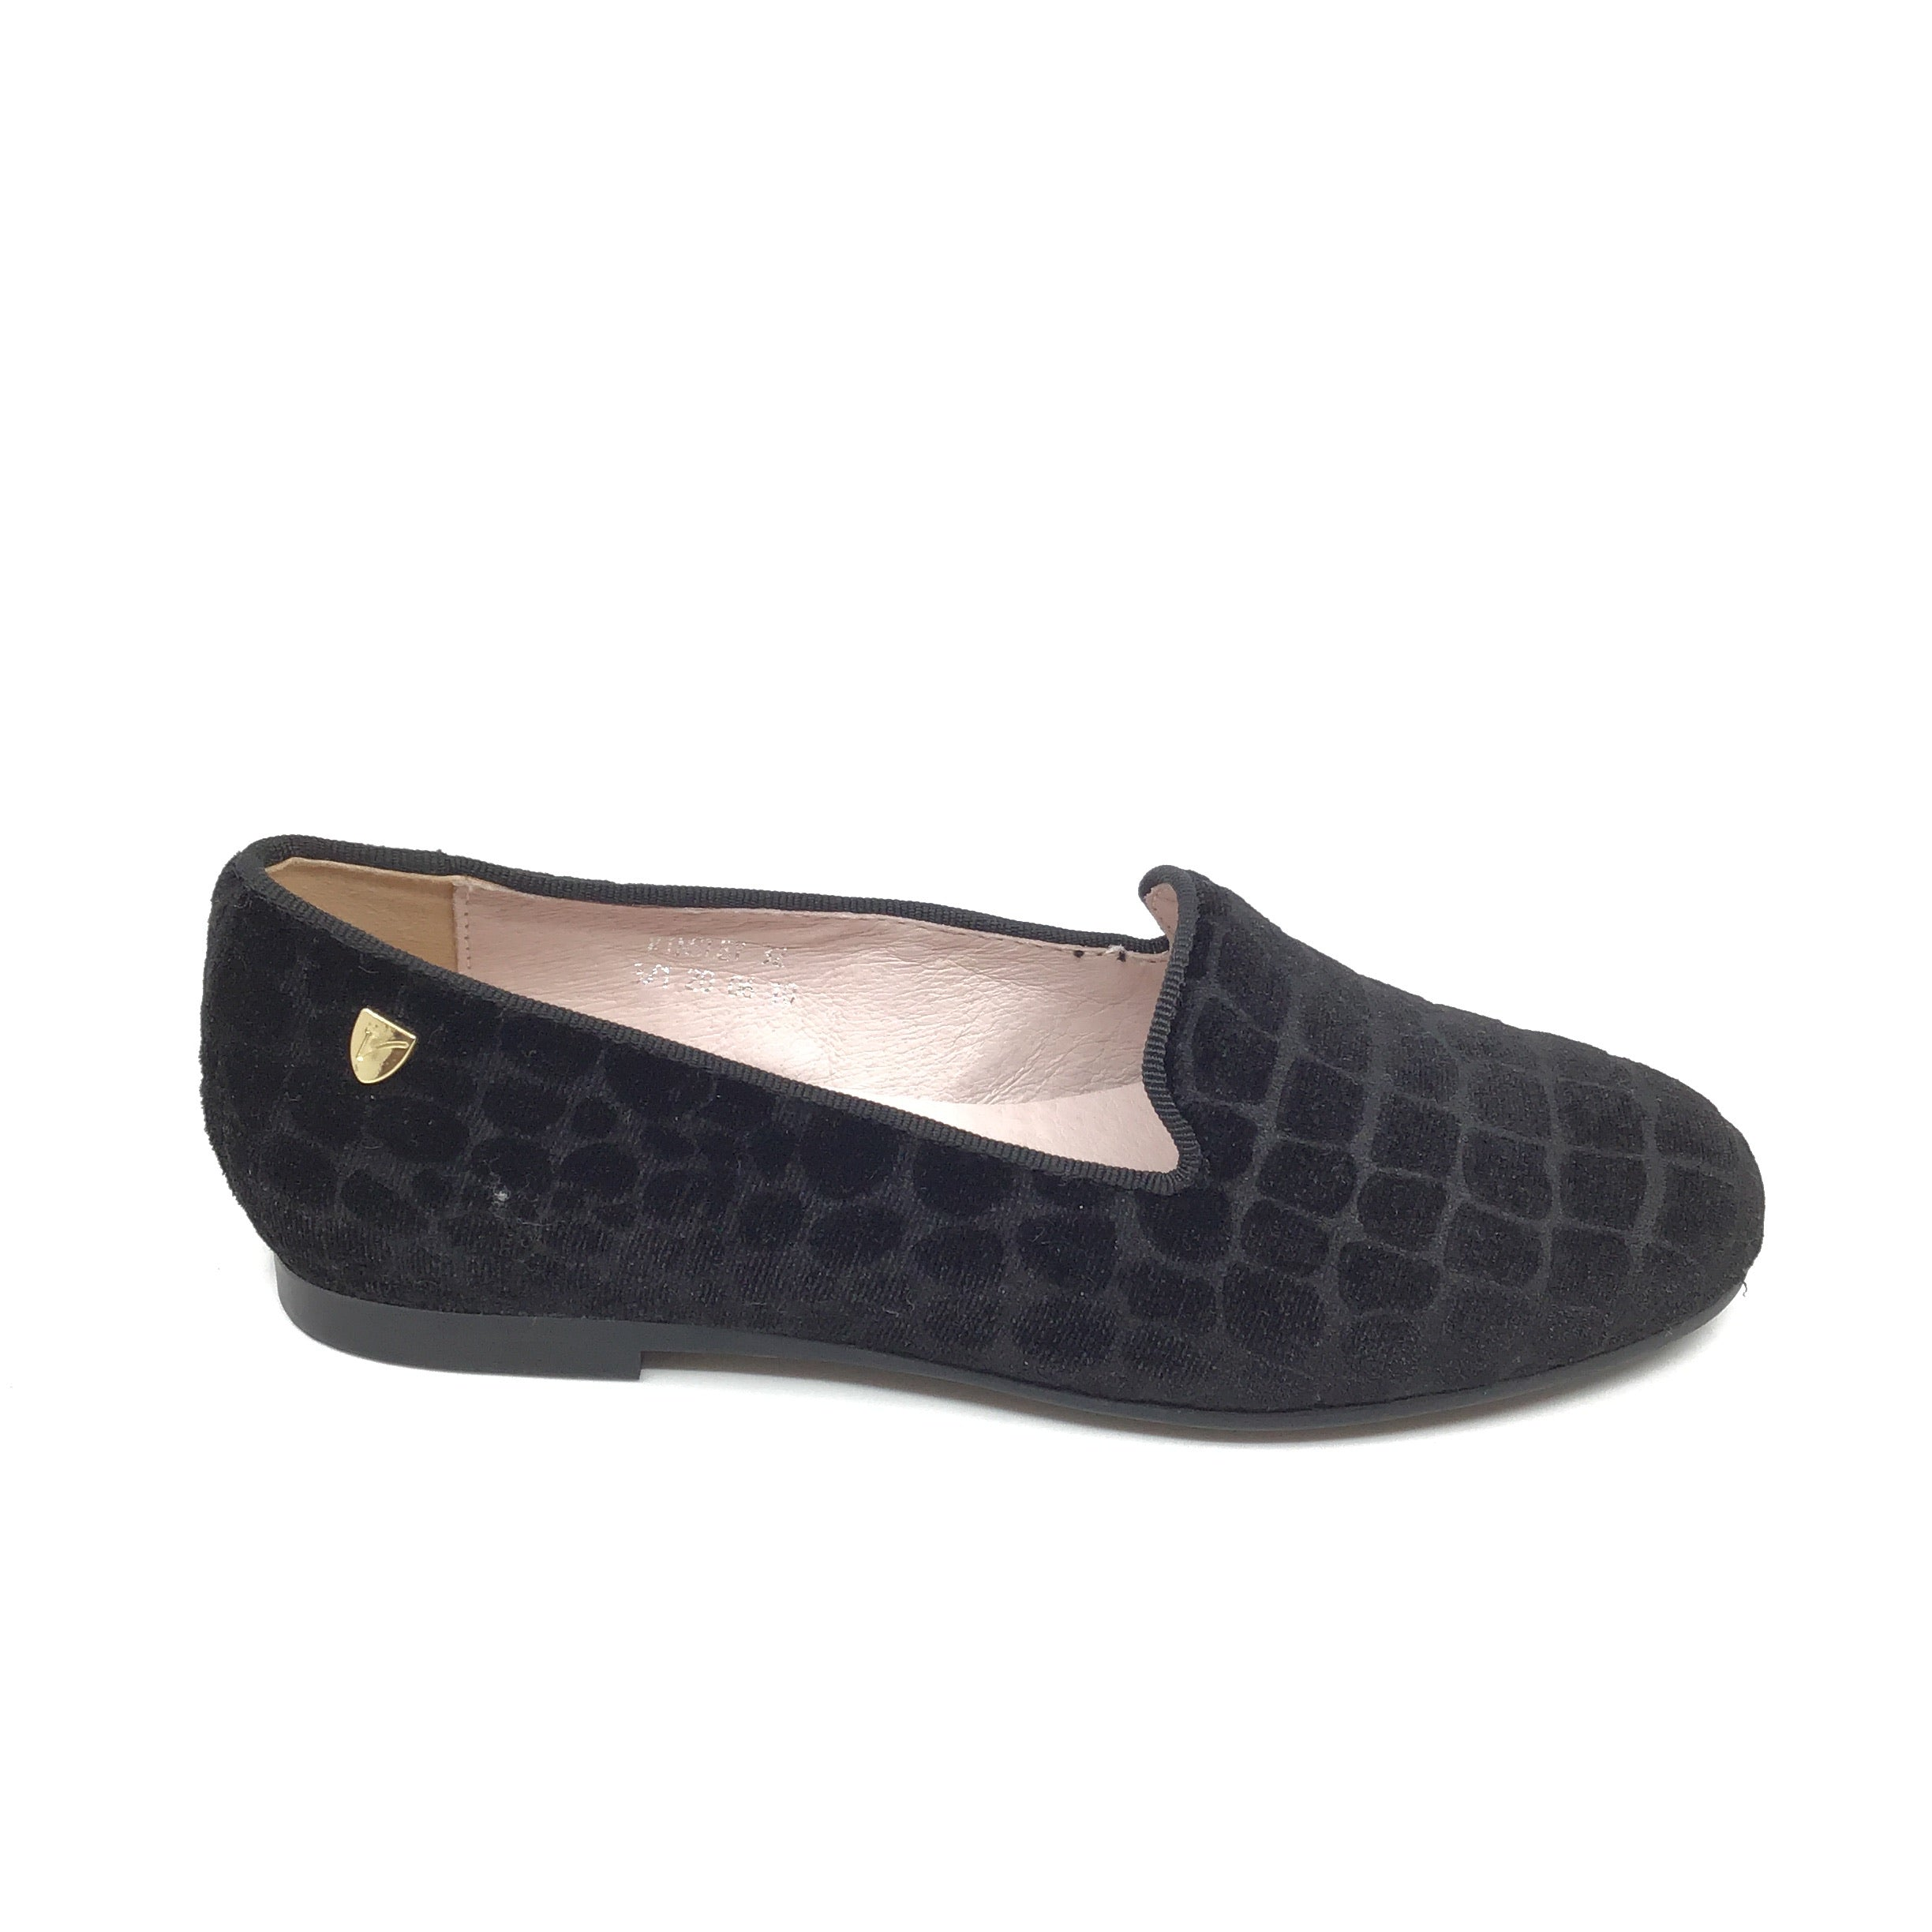 Venettini Black Stone Velvet Slip On